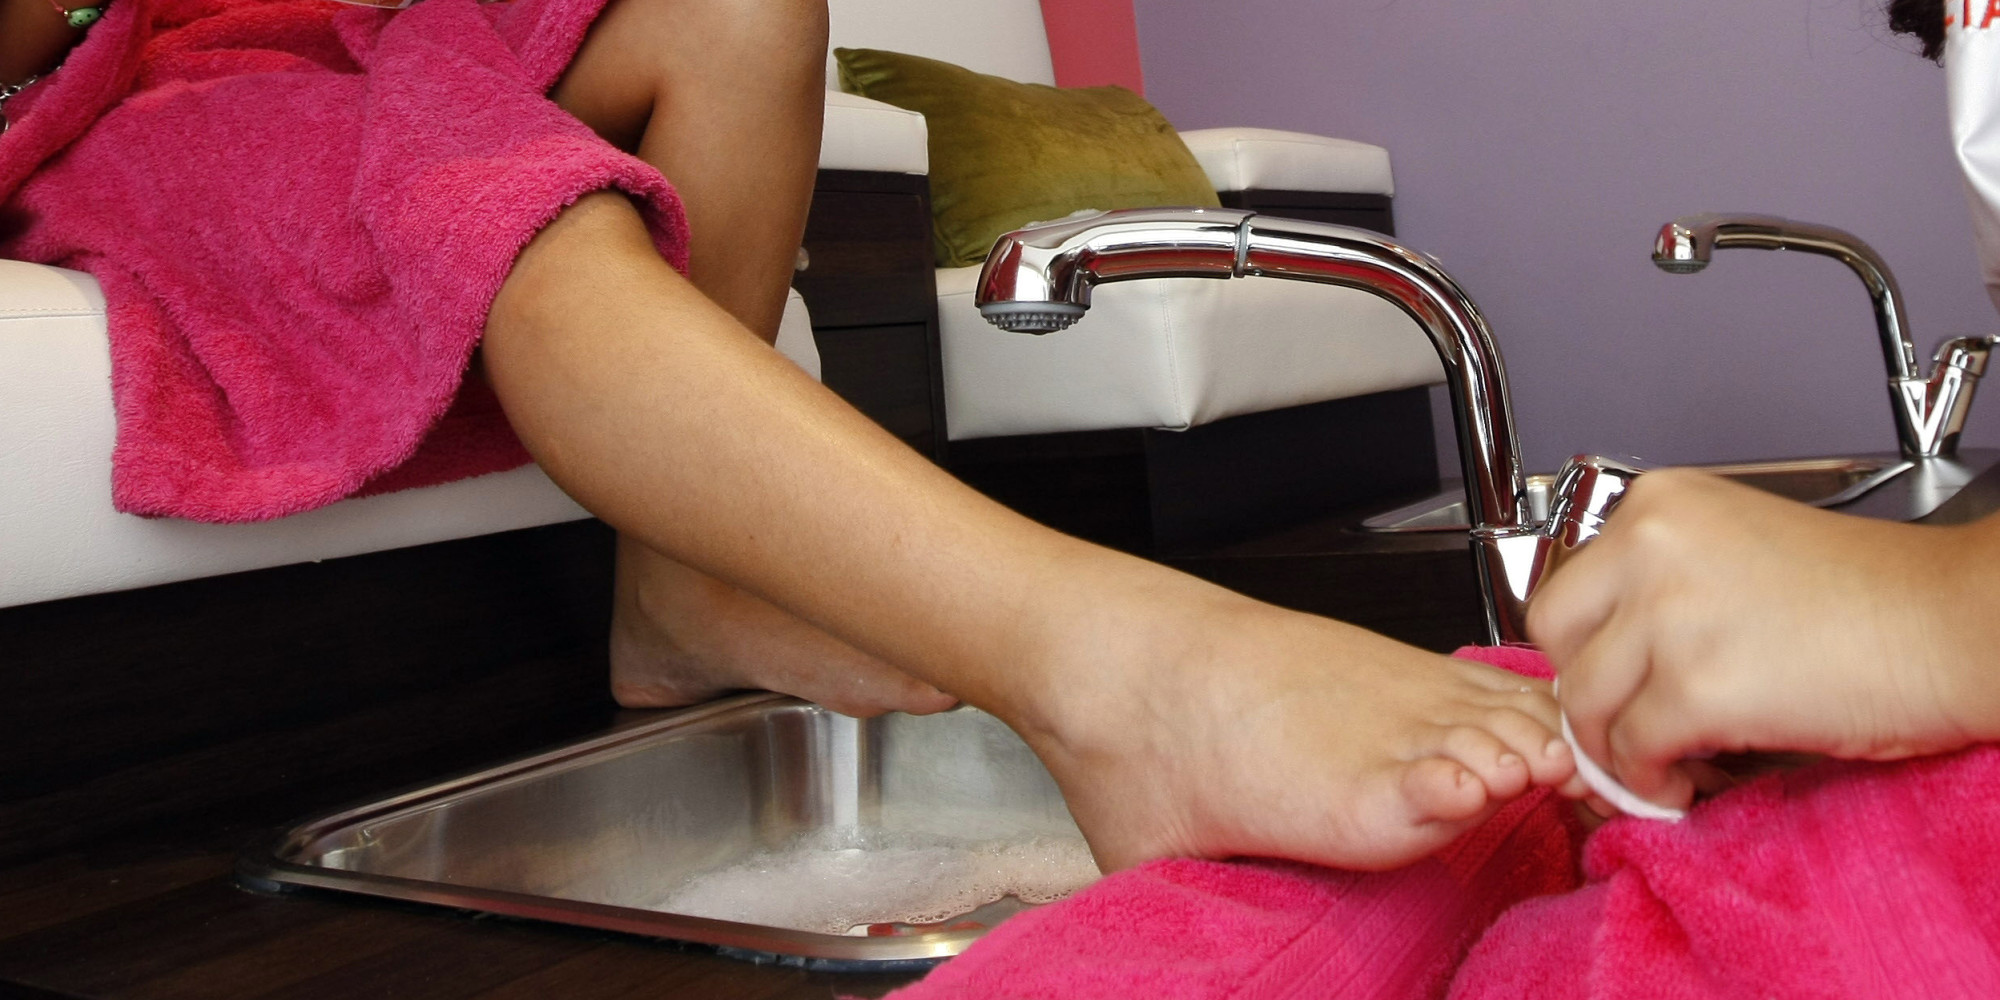 Thinking Of Getting A Pedicure? Beware The Health Risks First | HuffPost